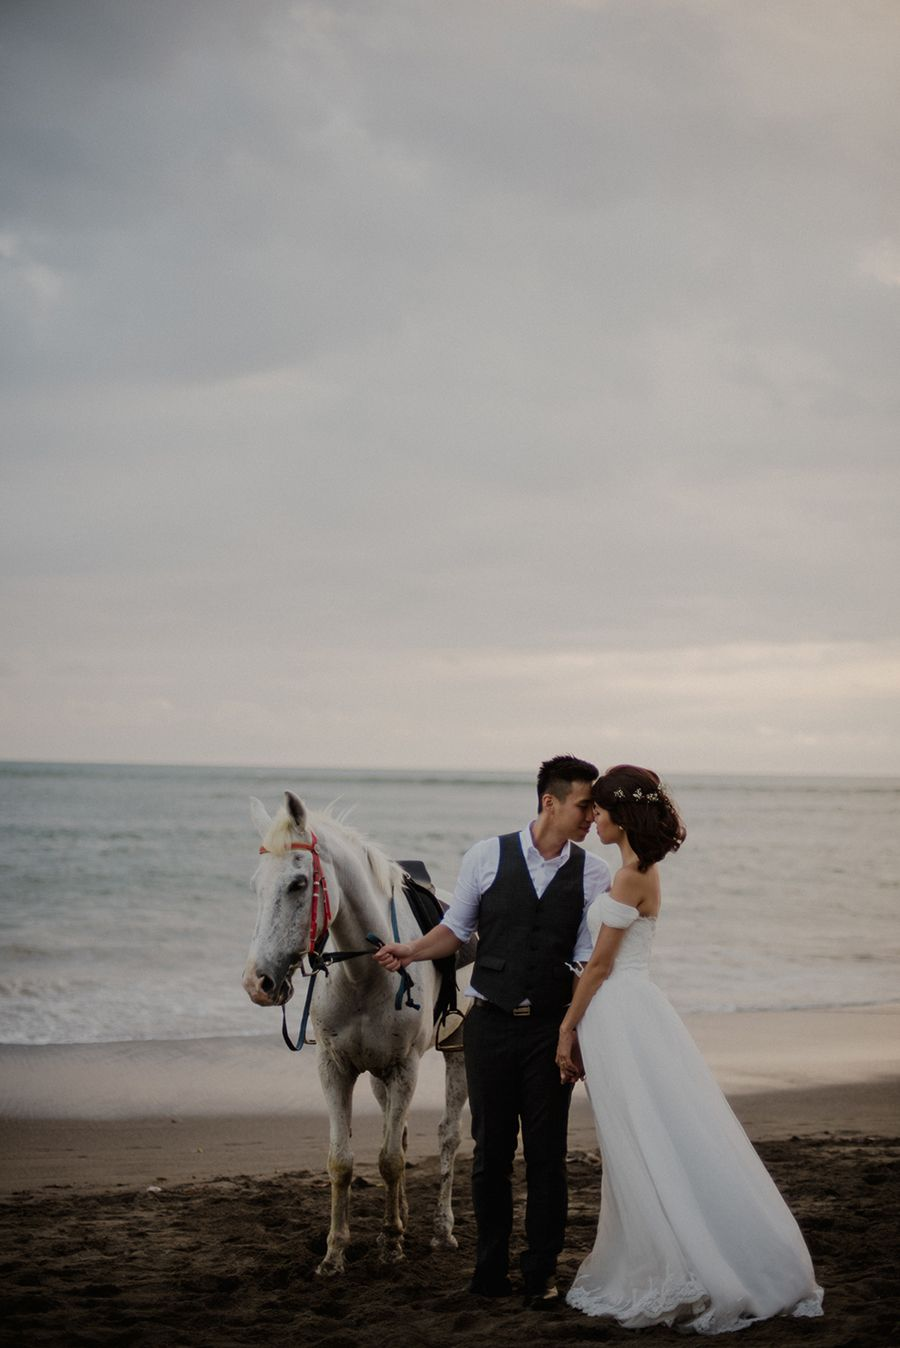 Weileong And Germaine S Pre Wedding Photo Shoot With Horses In